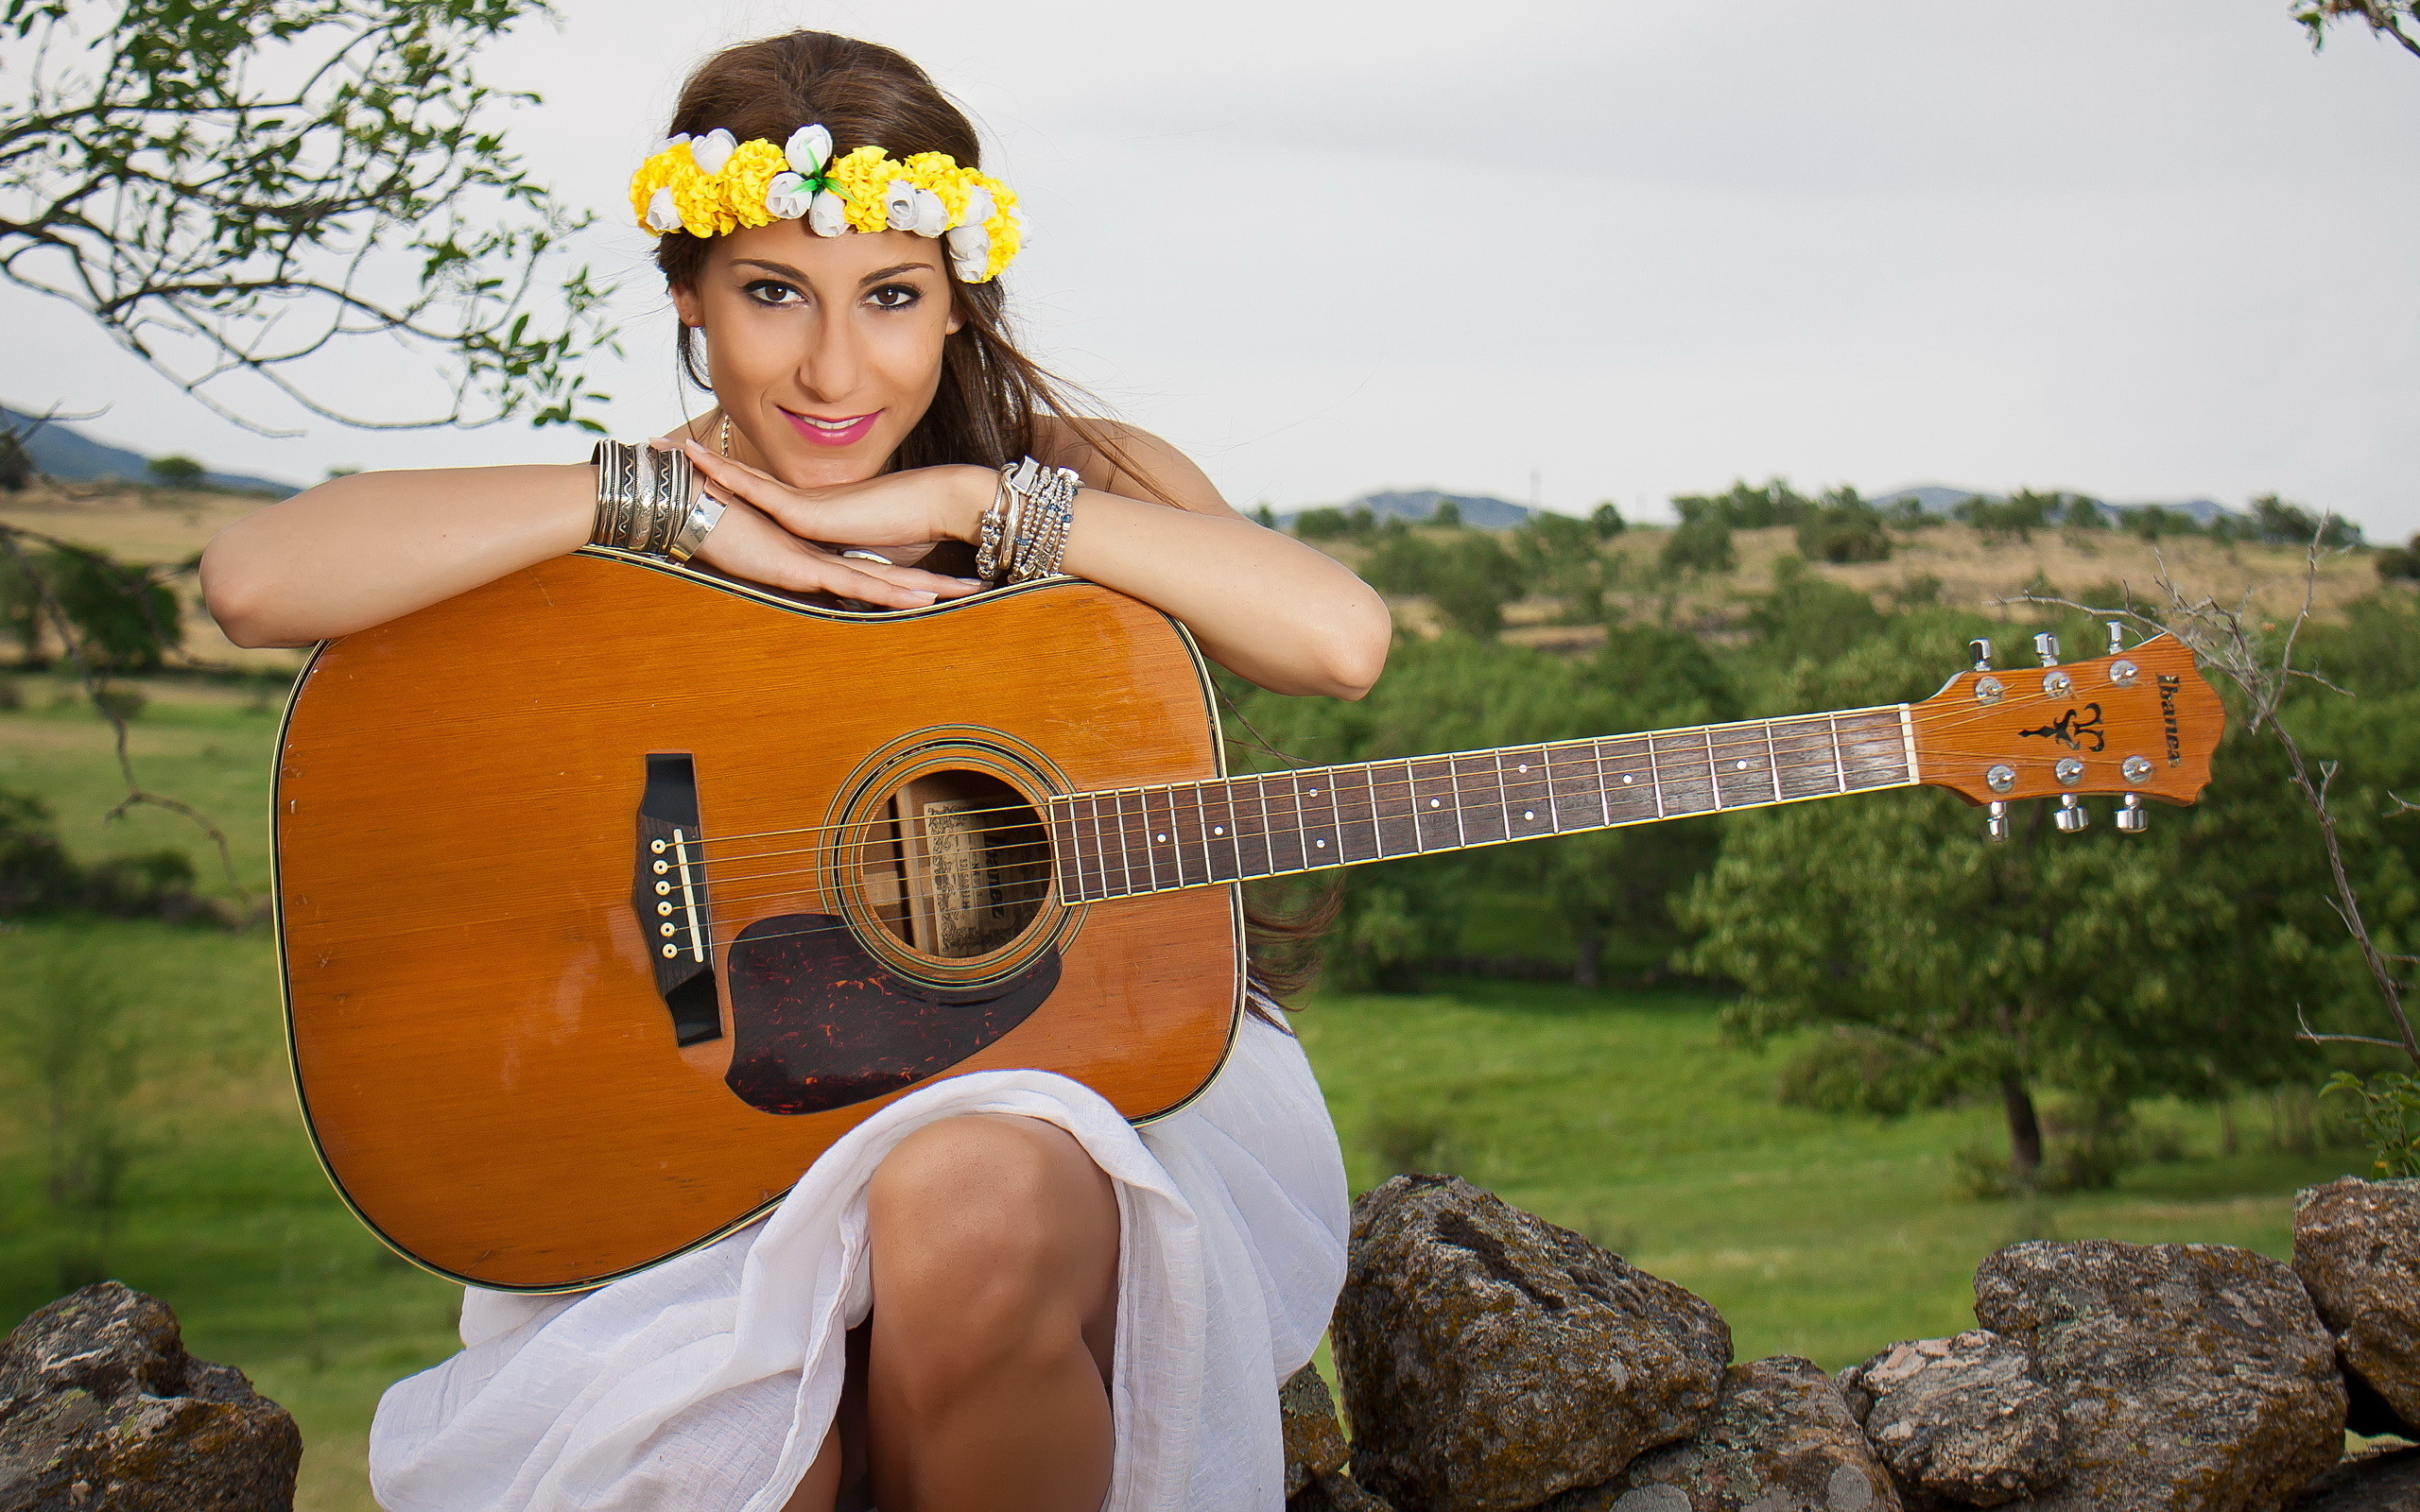 Res: 2560x1600, Girl guitar music background country singer photo field.